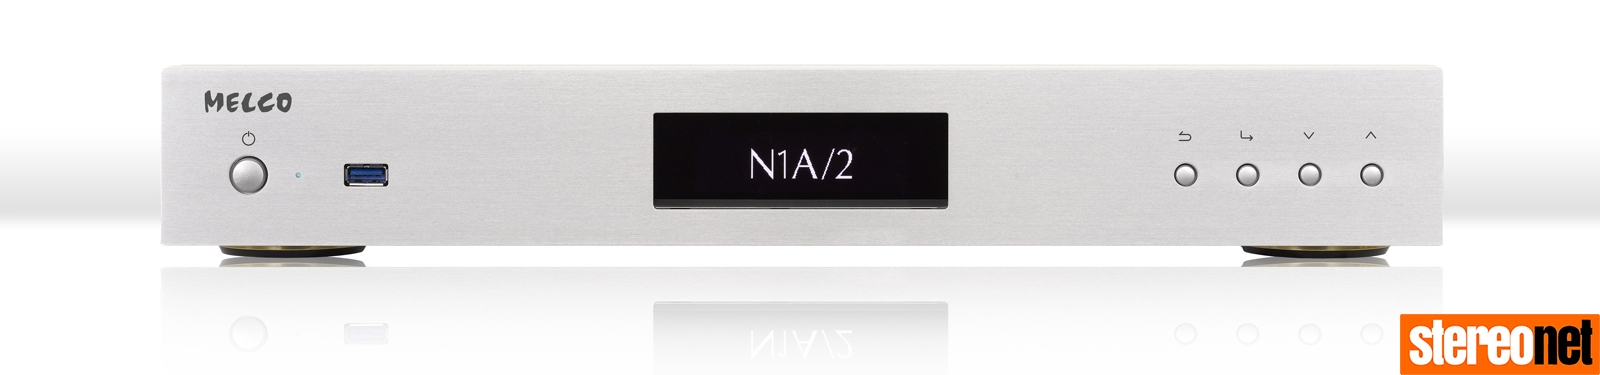 Melco N1A/2EX-H60 review